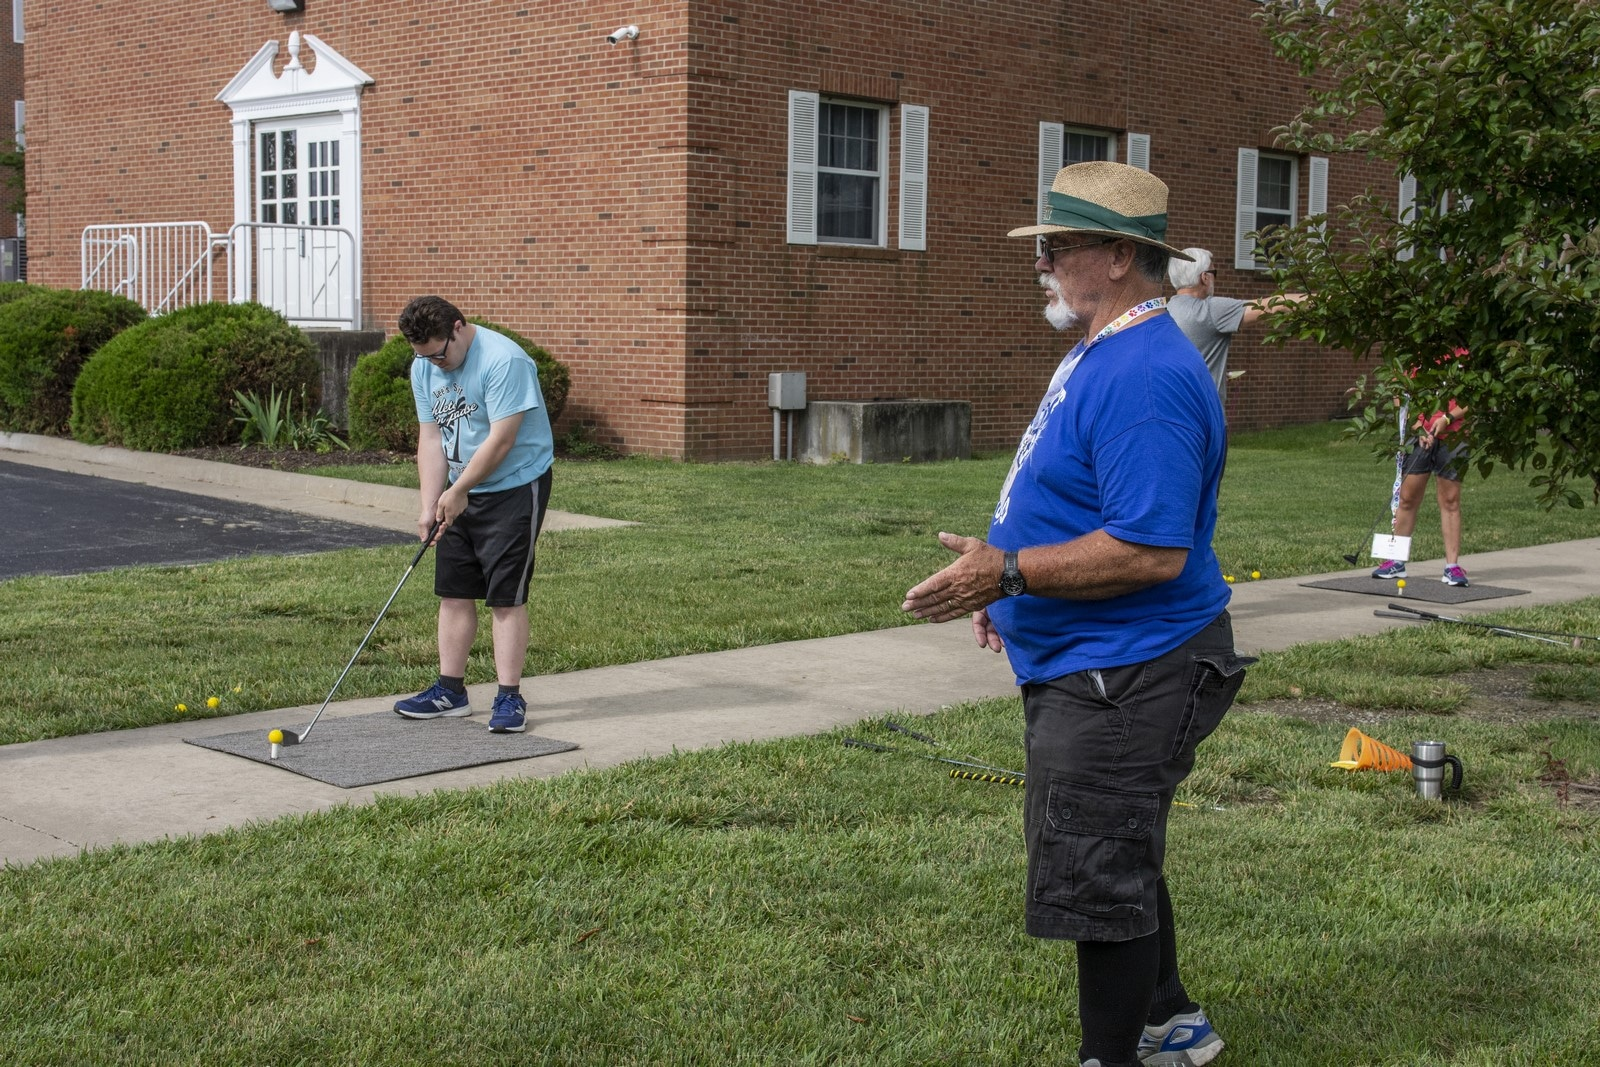 An athlete practices their golf swing off a practice mat while a coach looks on